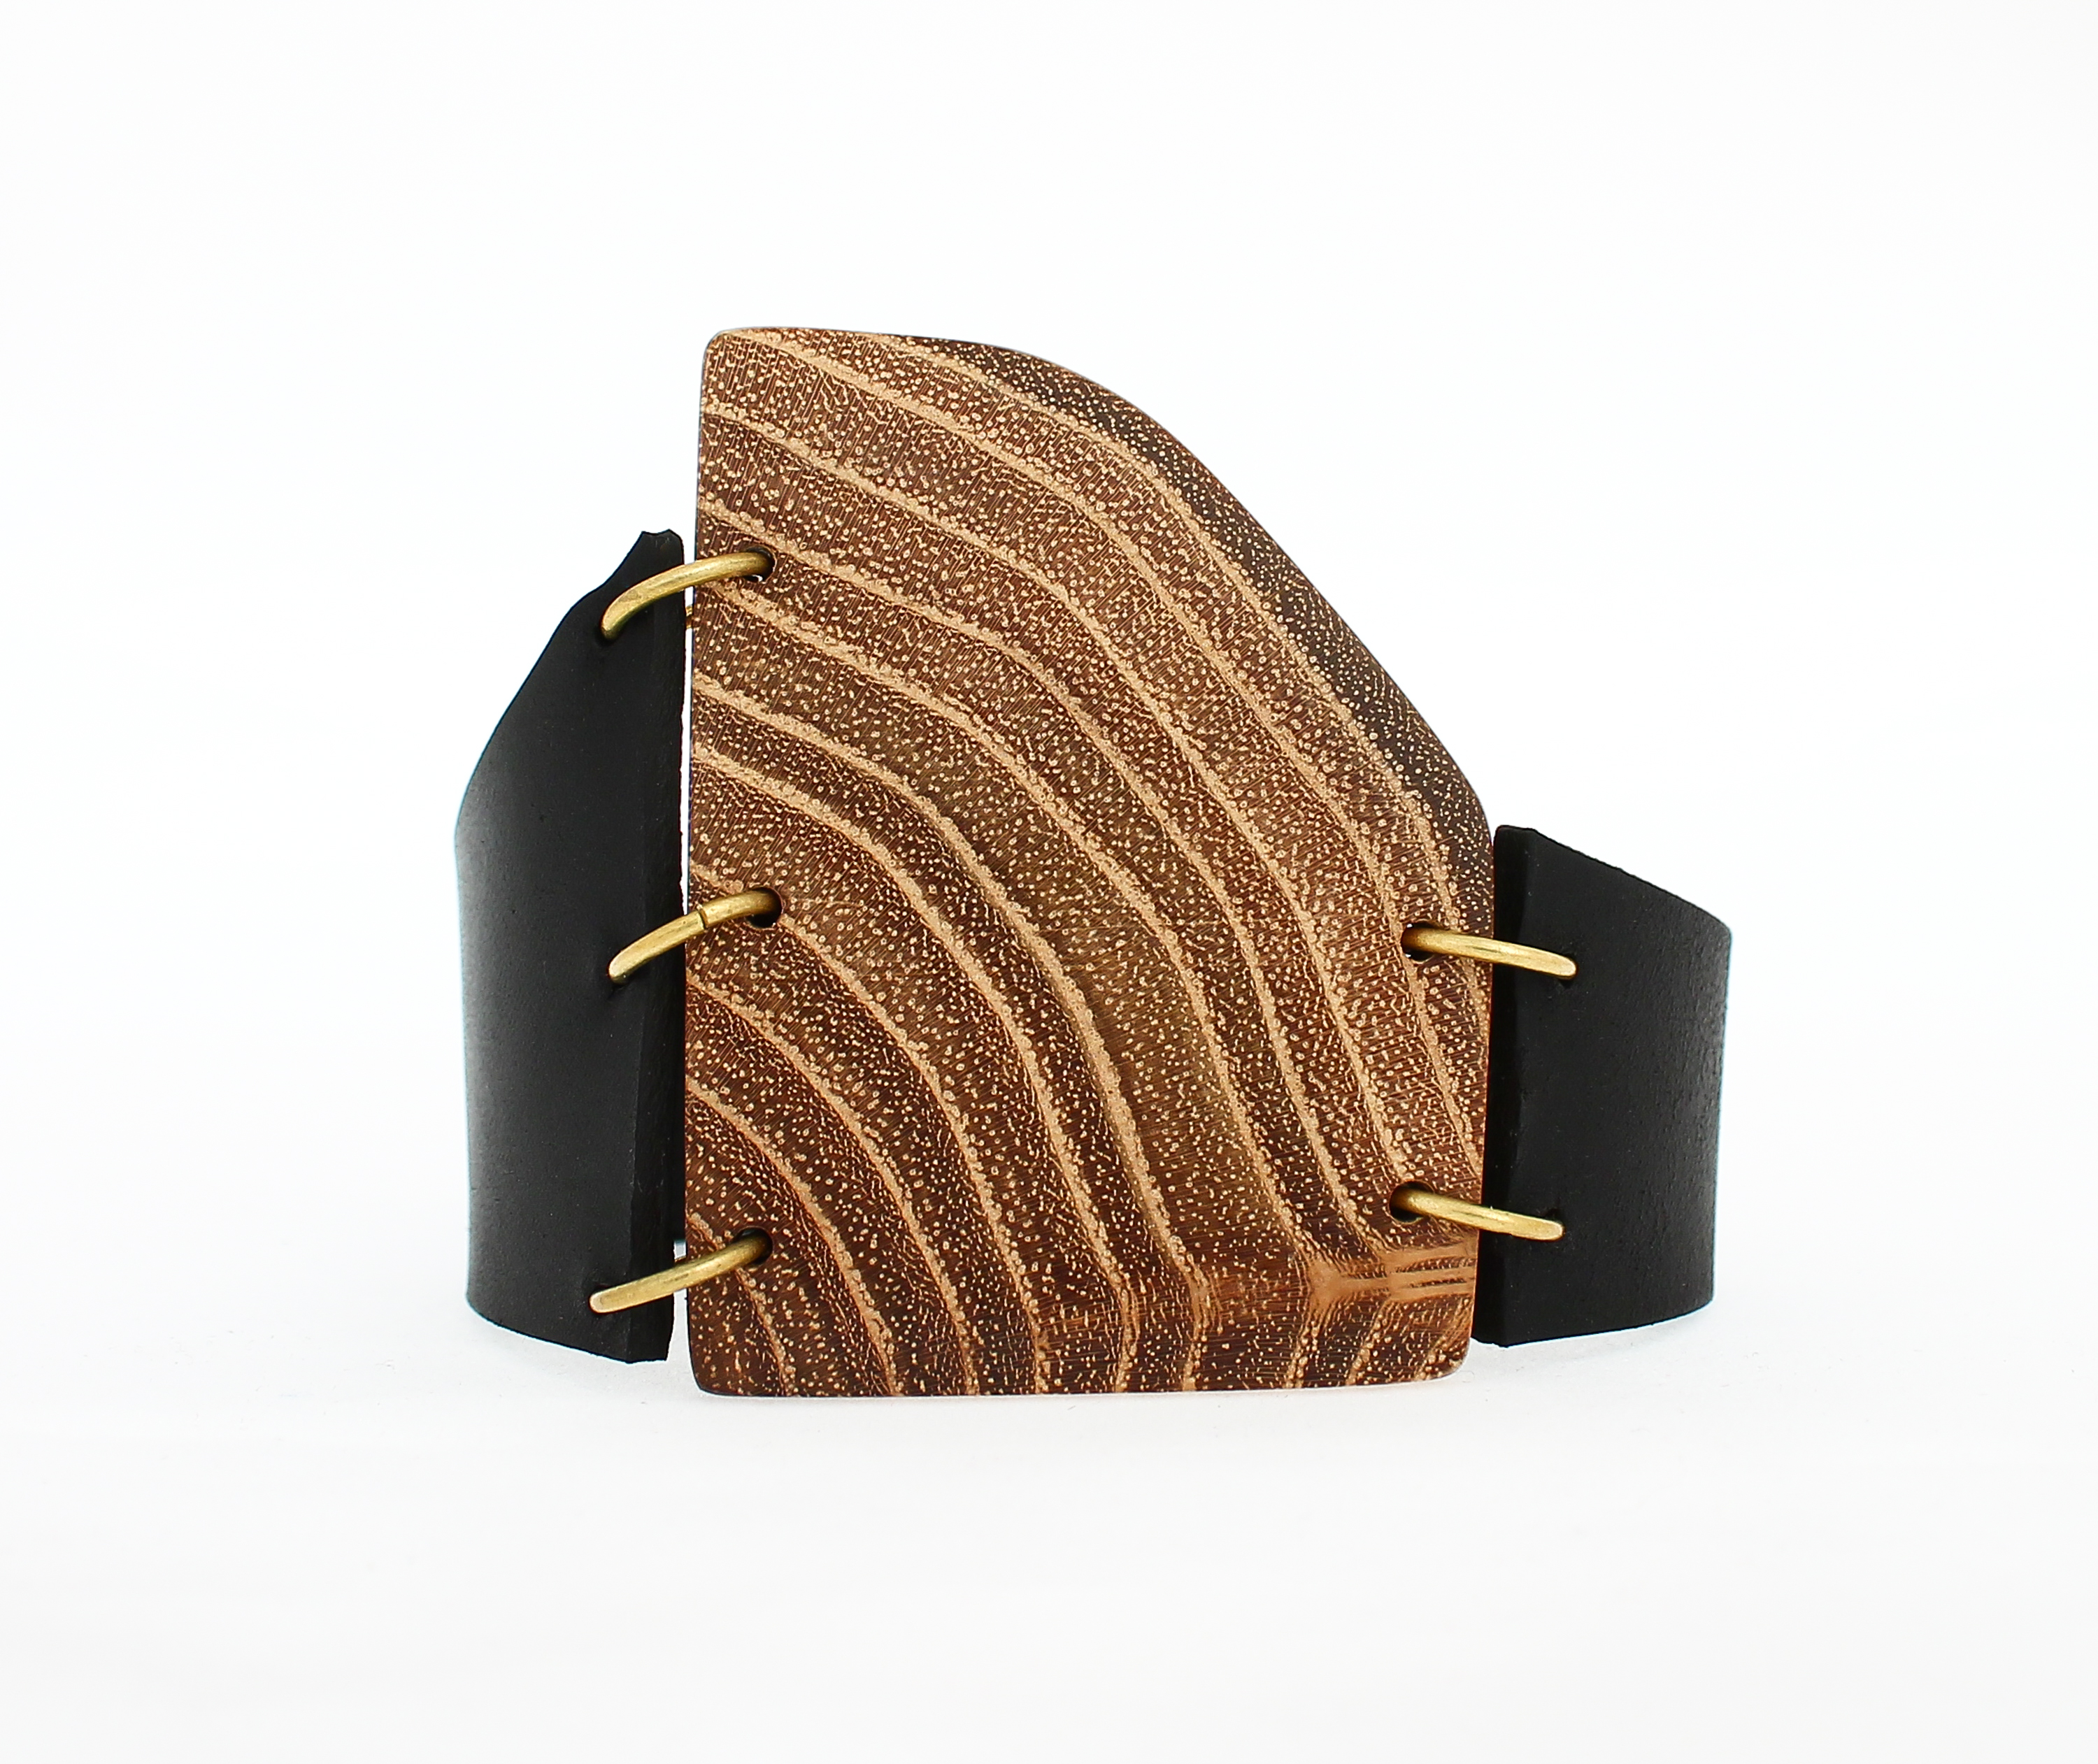 black locust leather cuff bracelet